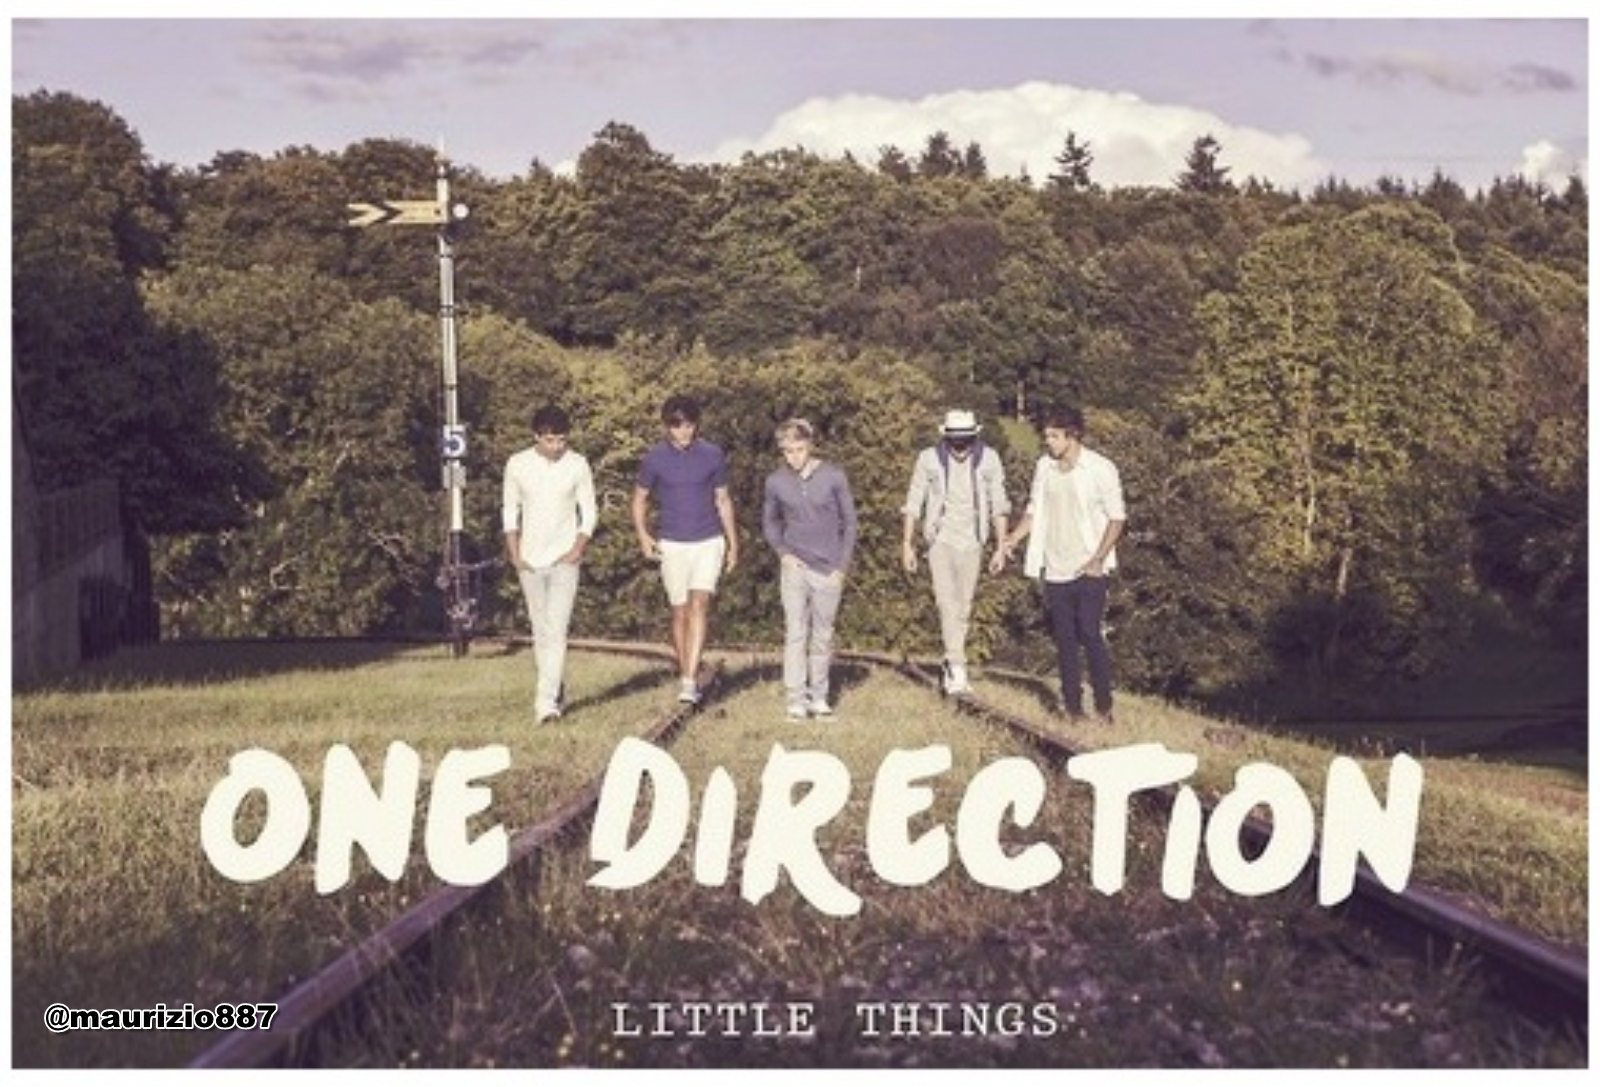 Little things by